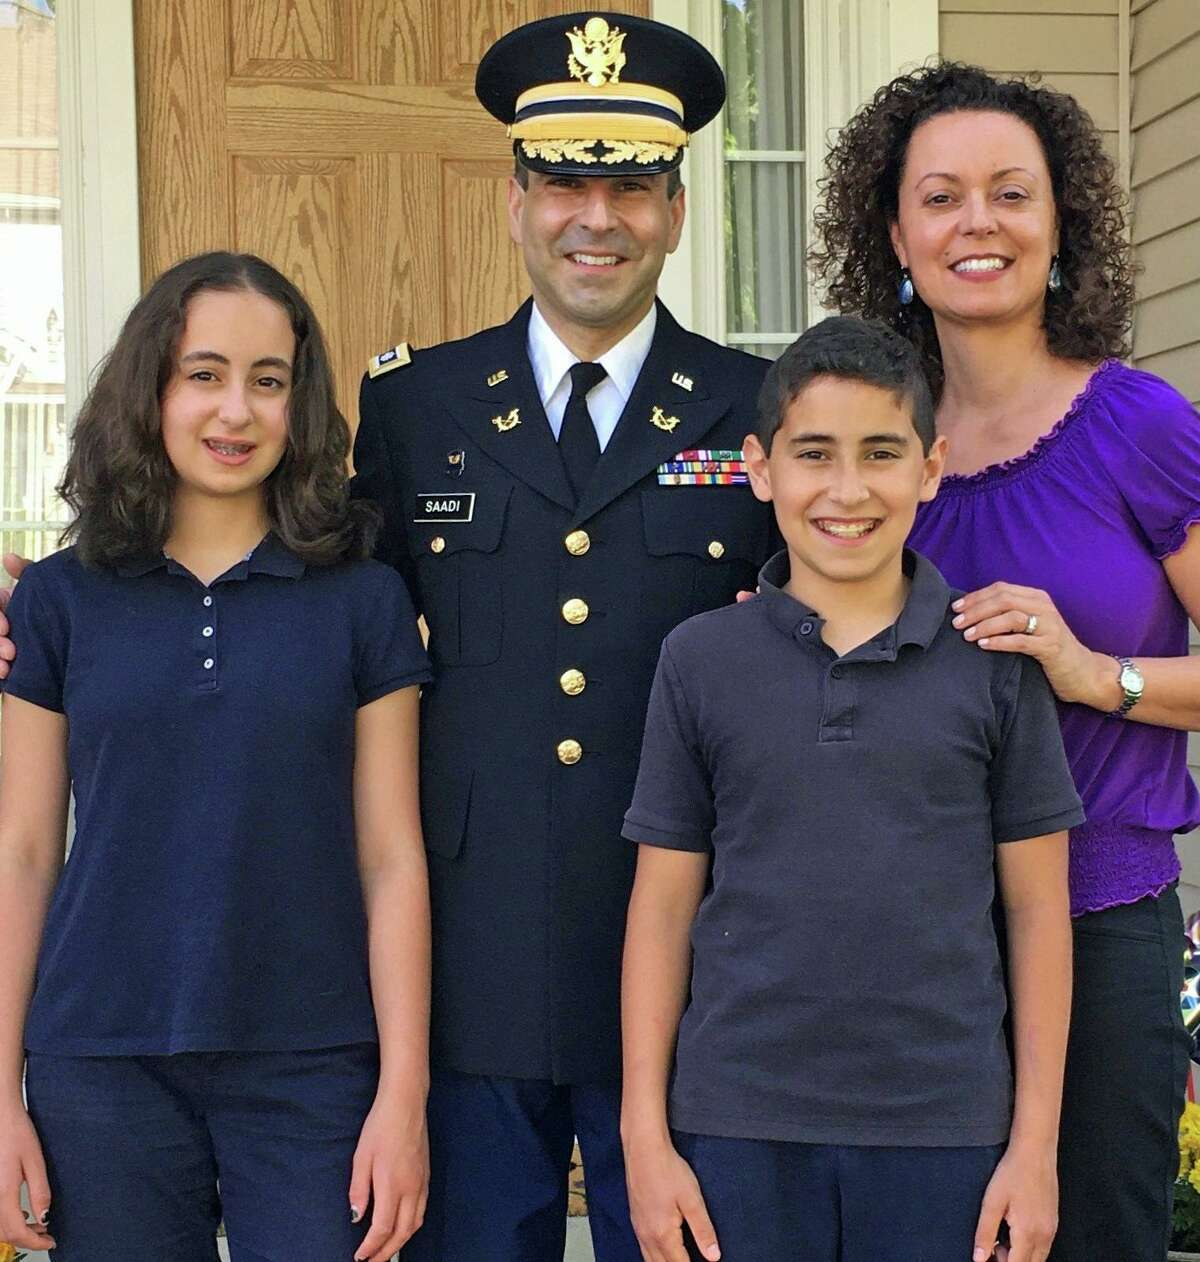 Lt. Col. Tom Saadi, state commissioner of veterans affairs, with his wife, Valerie and his twin children, Sabrina and Jacob.